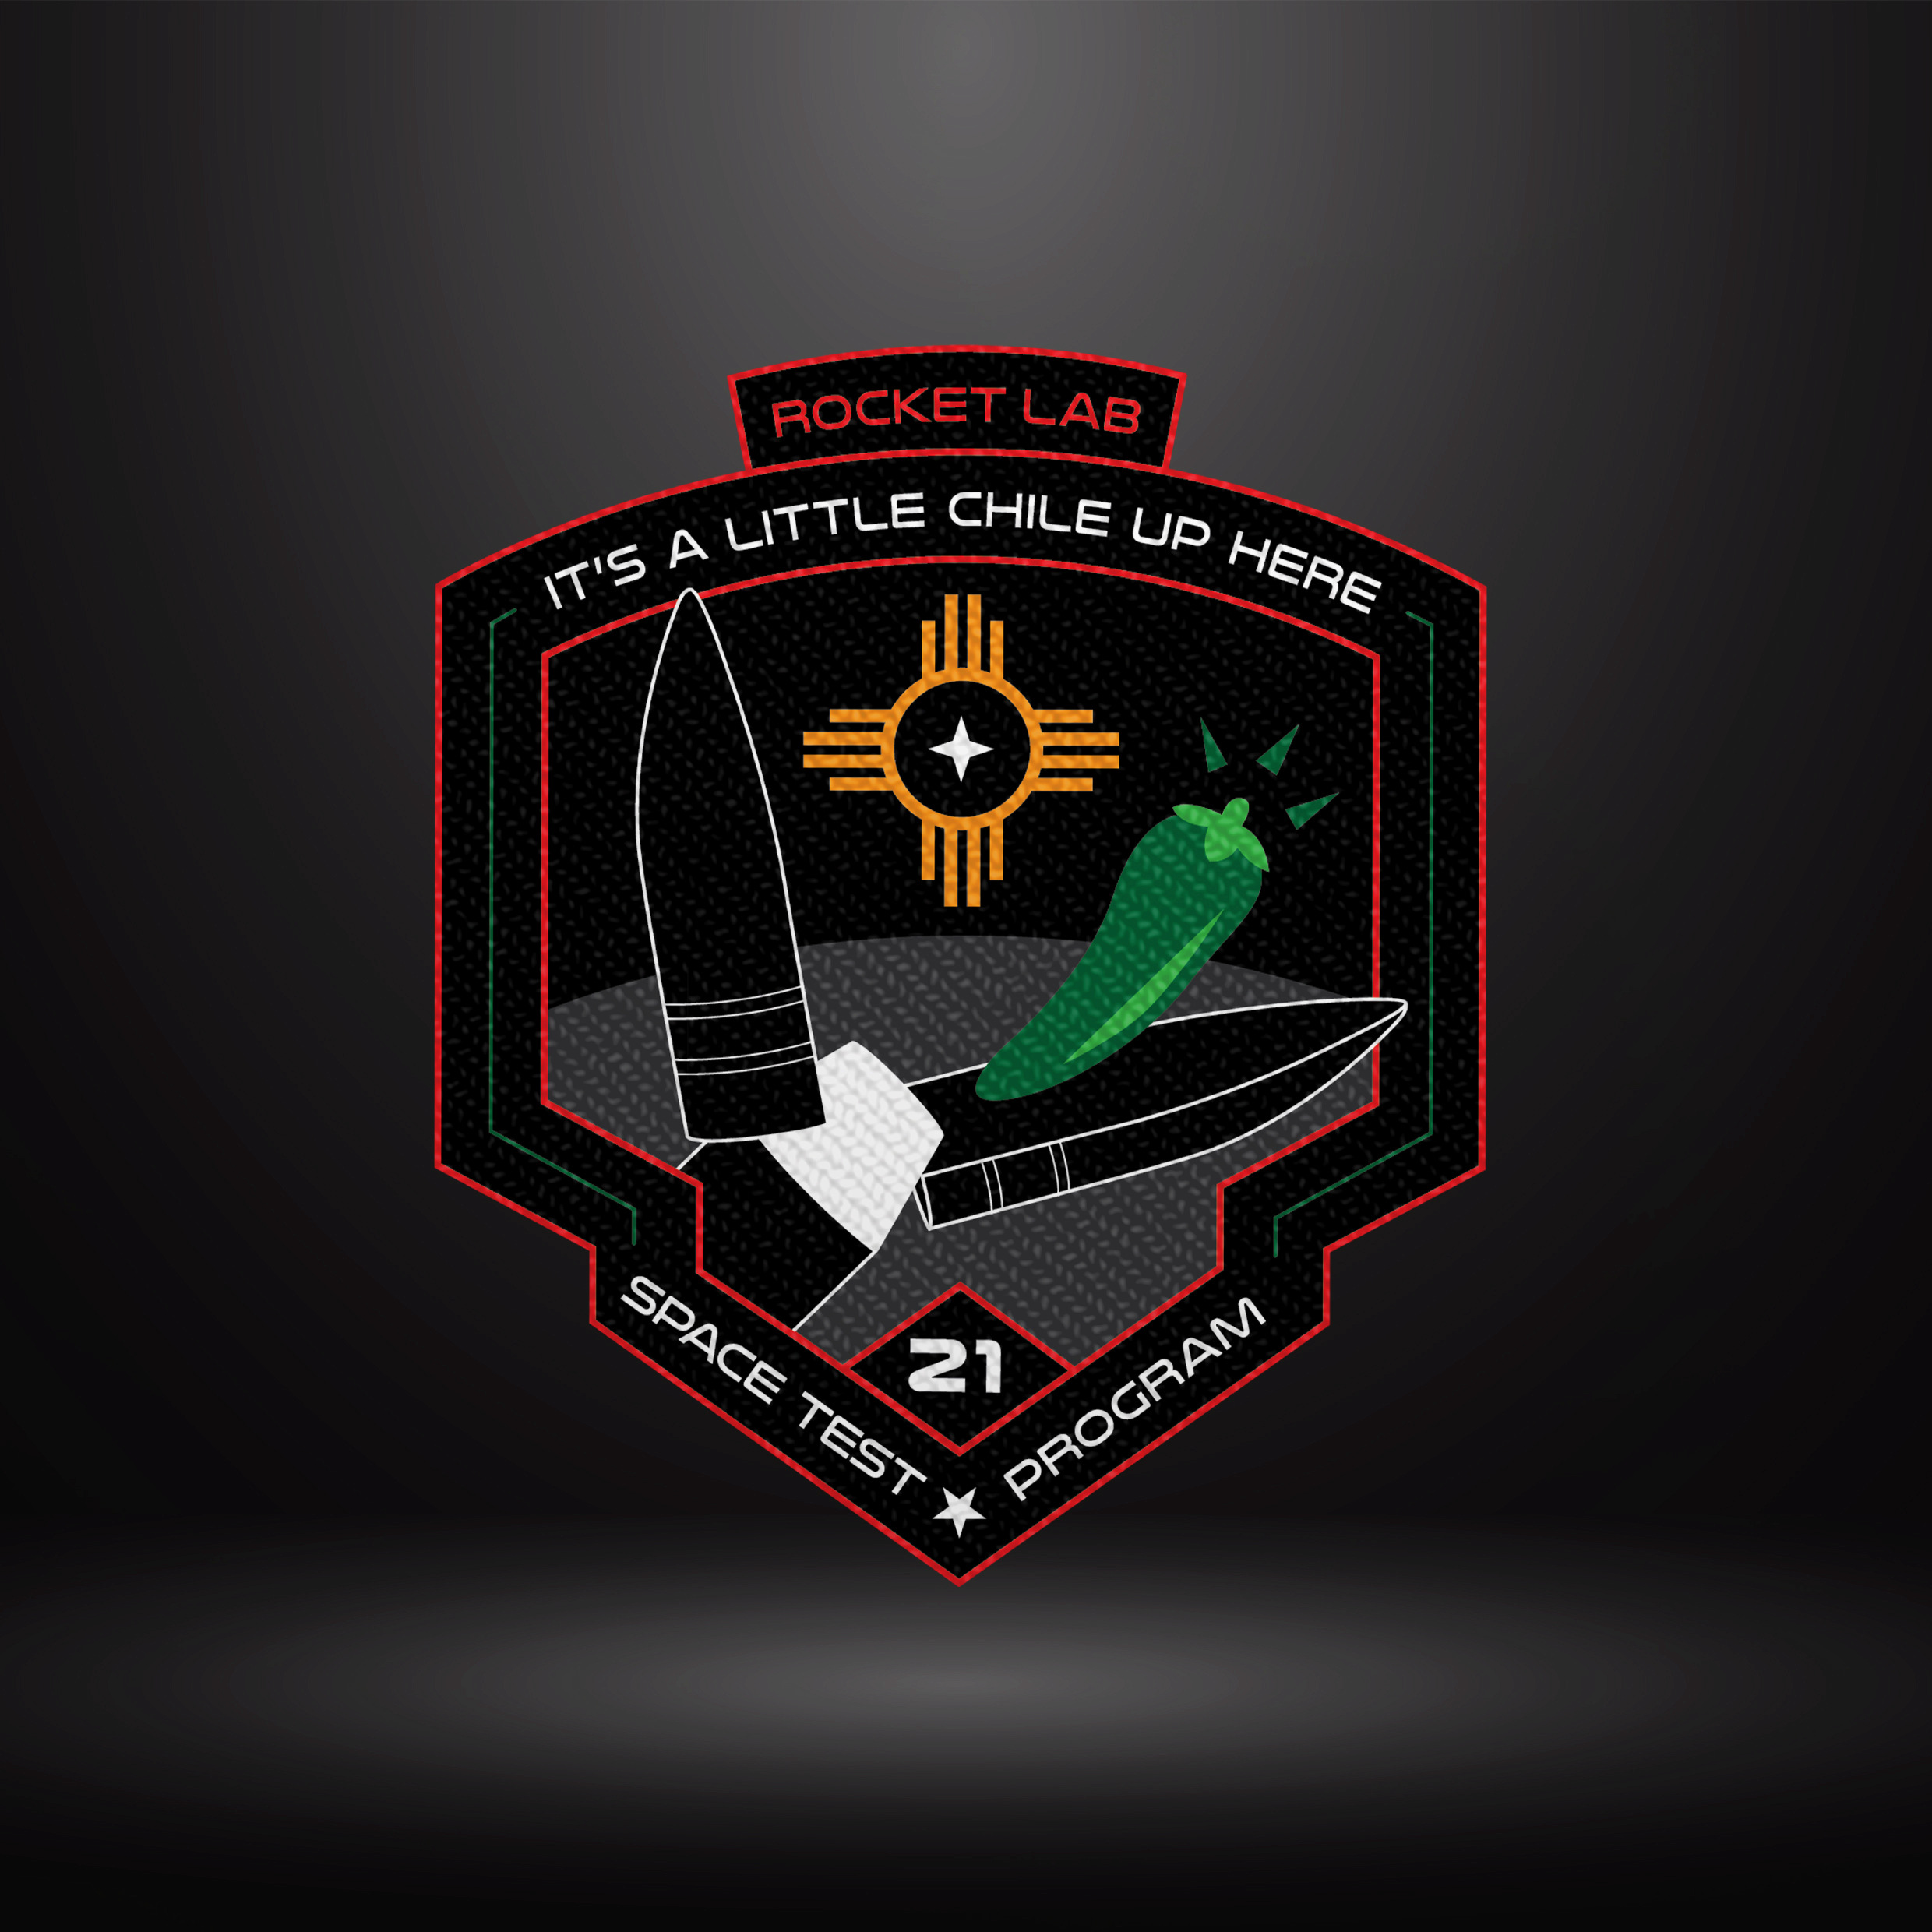 """[Rocket Lab] Electron n°21 """"It's a little chile up there"""" (Monolith) - OnS - 29.7.2021 12073"""